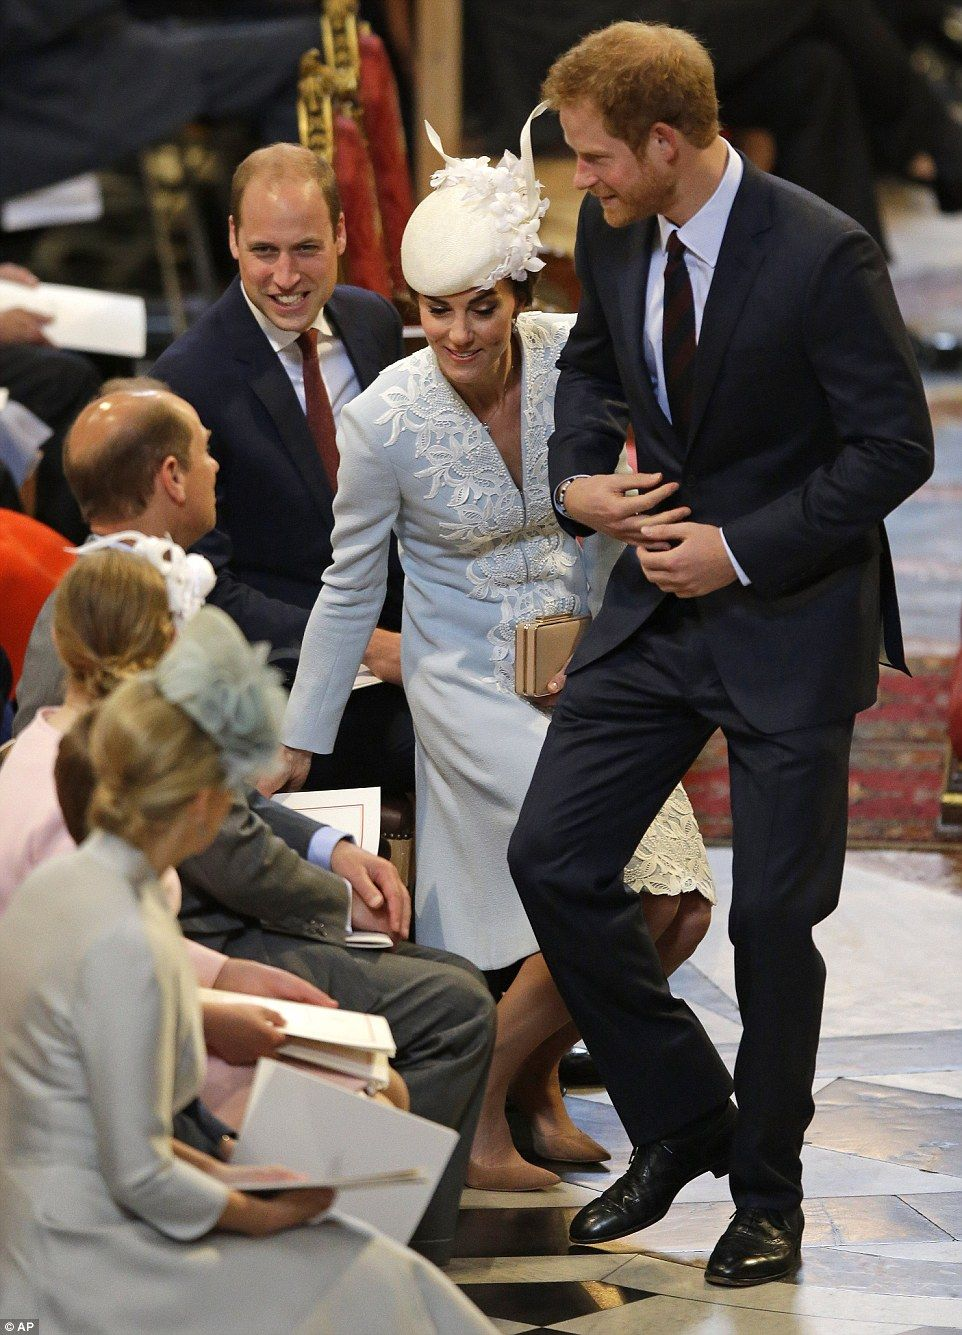 The Duchess took her seat alongside William's uncle Prince Edward